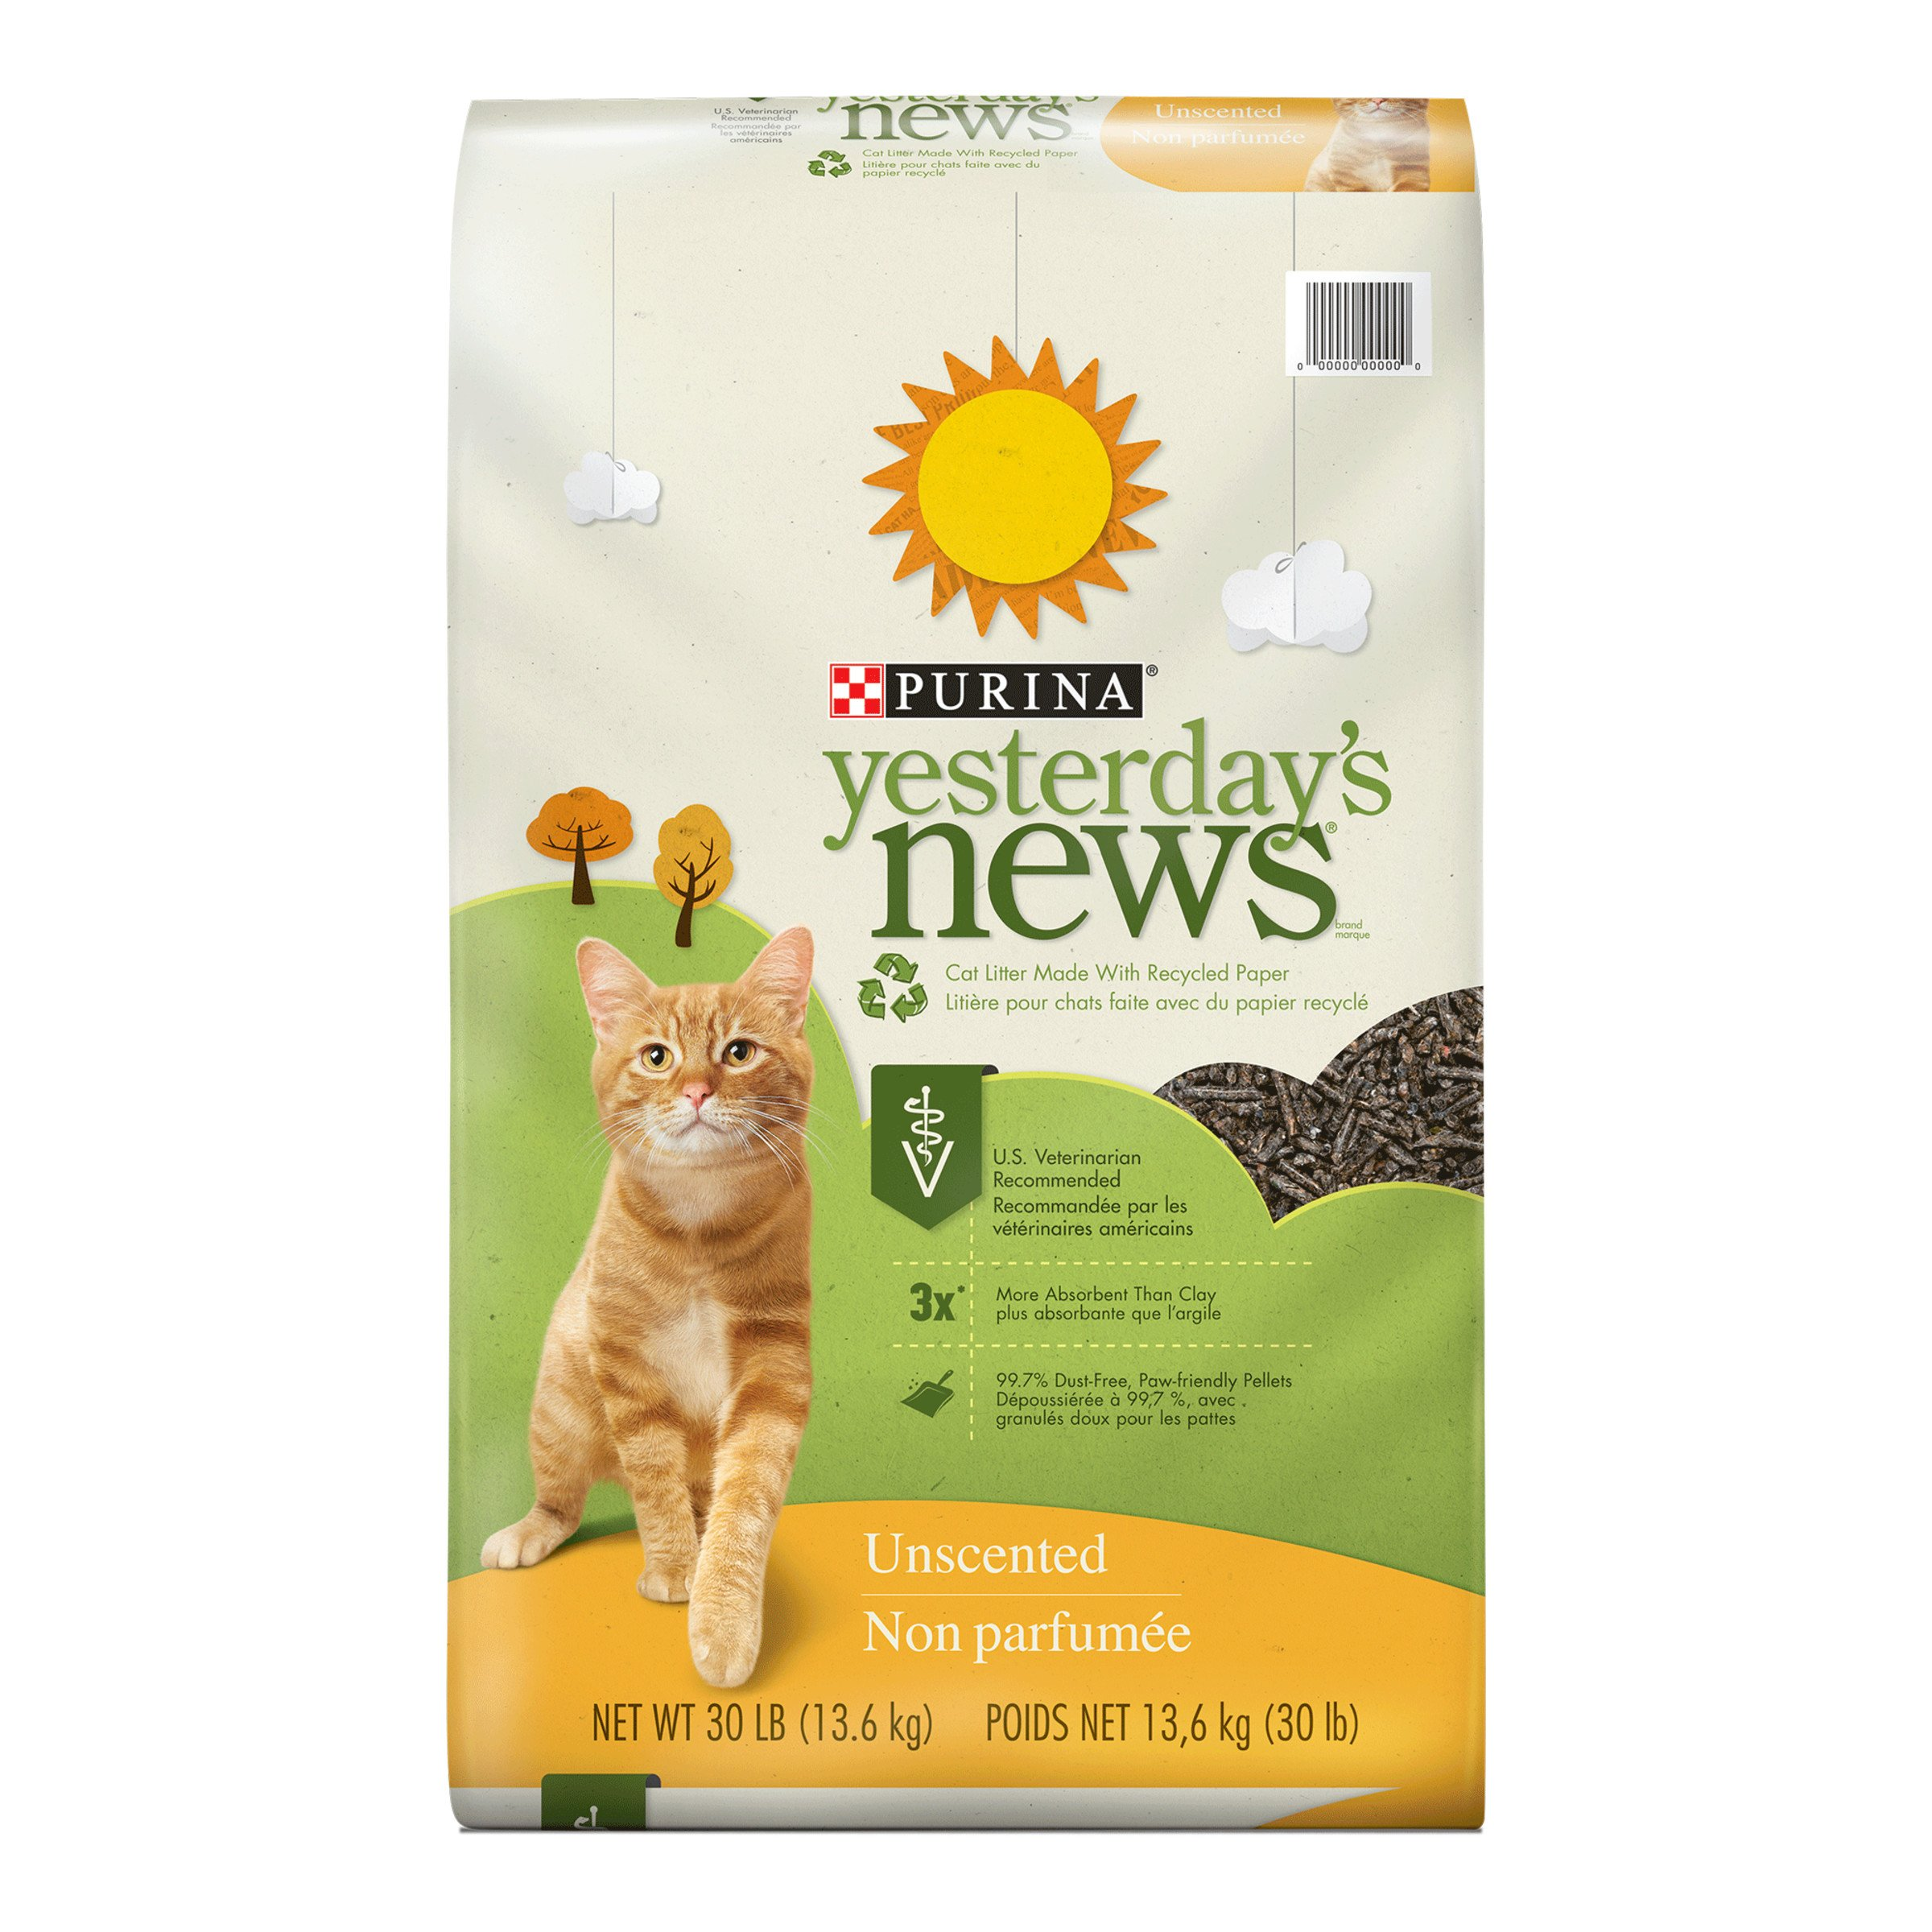 Purina Yesterday's News Unscented Cat Litter - 30 lb. Bag